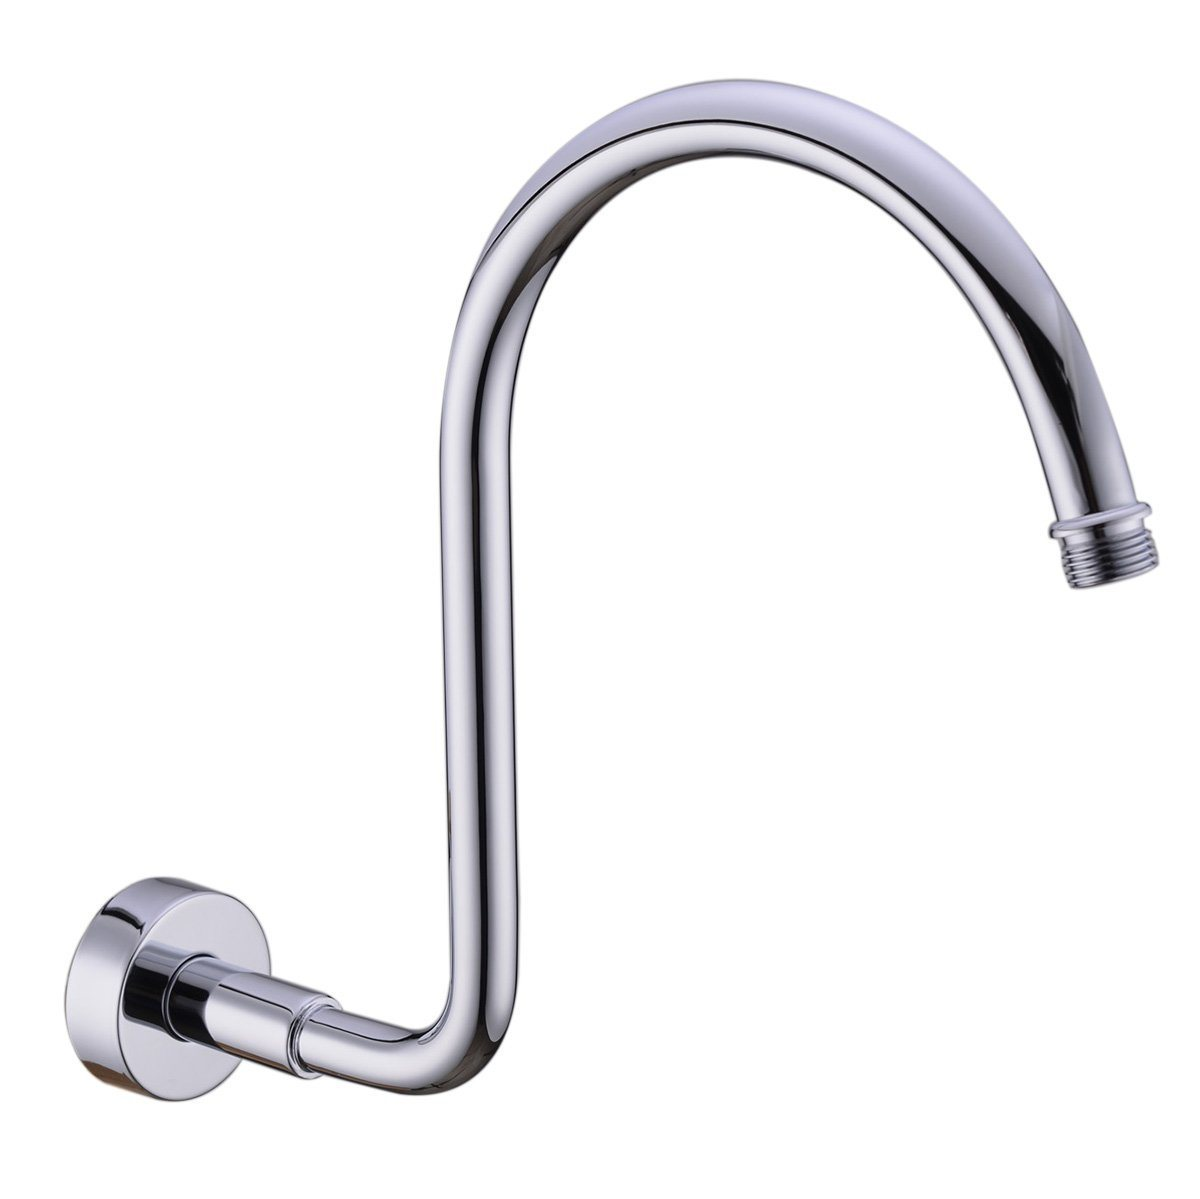 China Brass Gooseneck Extension Shower Arm With Flange Polished Chrome Also Brushed Nickel Or Bronze Or Black For Choose China Shower Arm Shower Head Arm